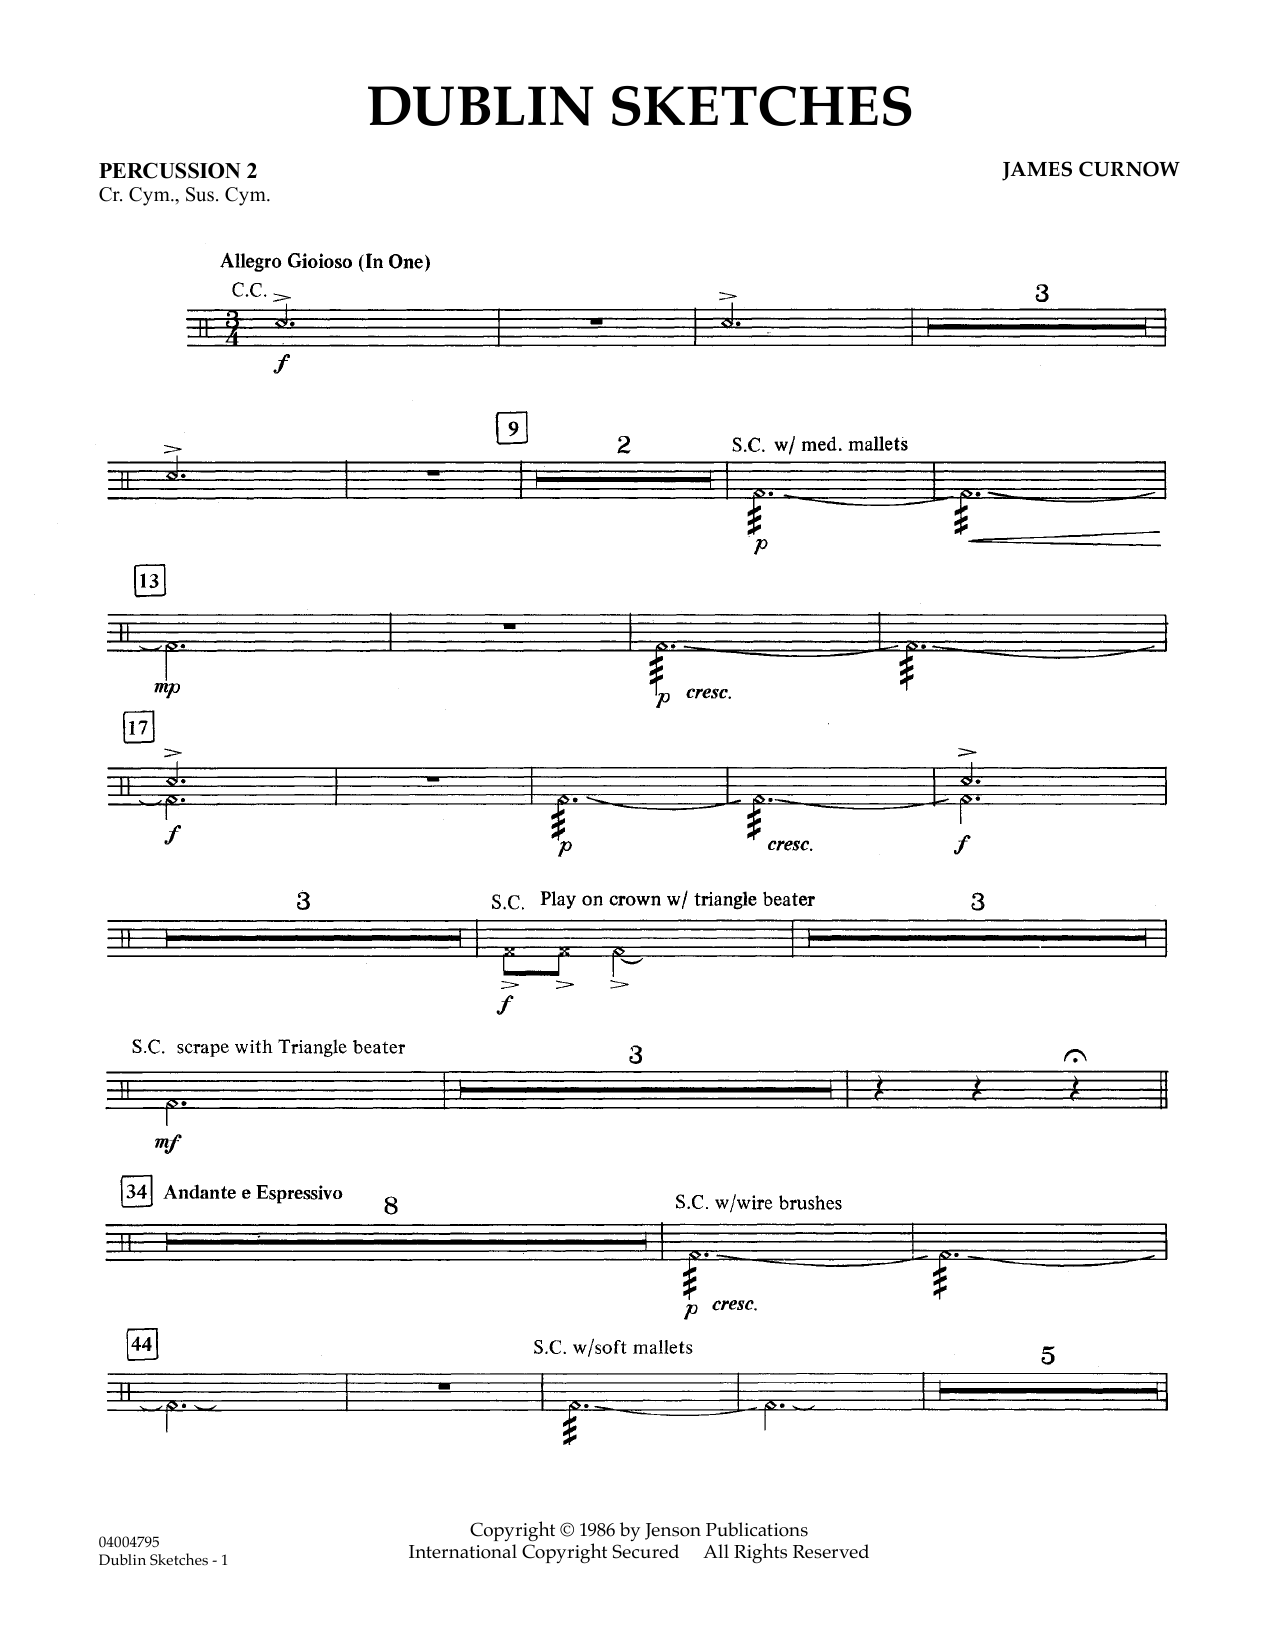 Dublin Sketches - Percussion 2 (Concert Band)